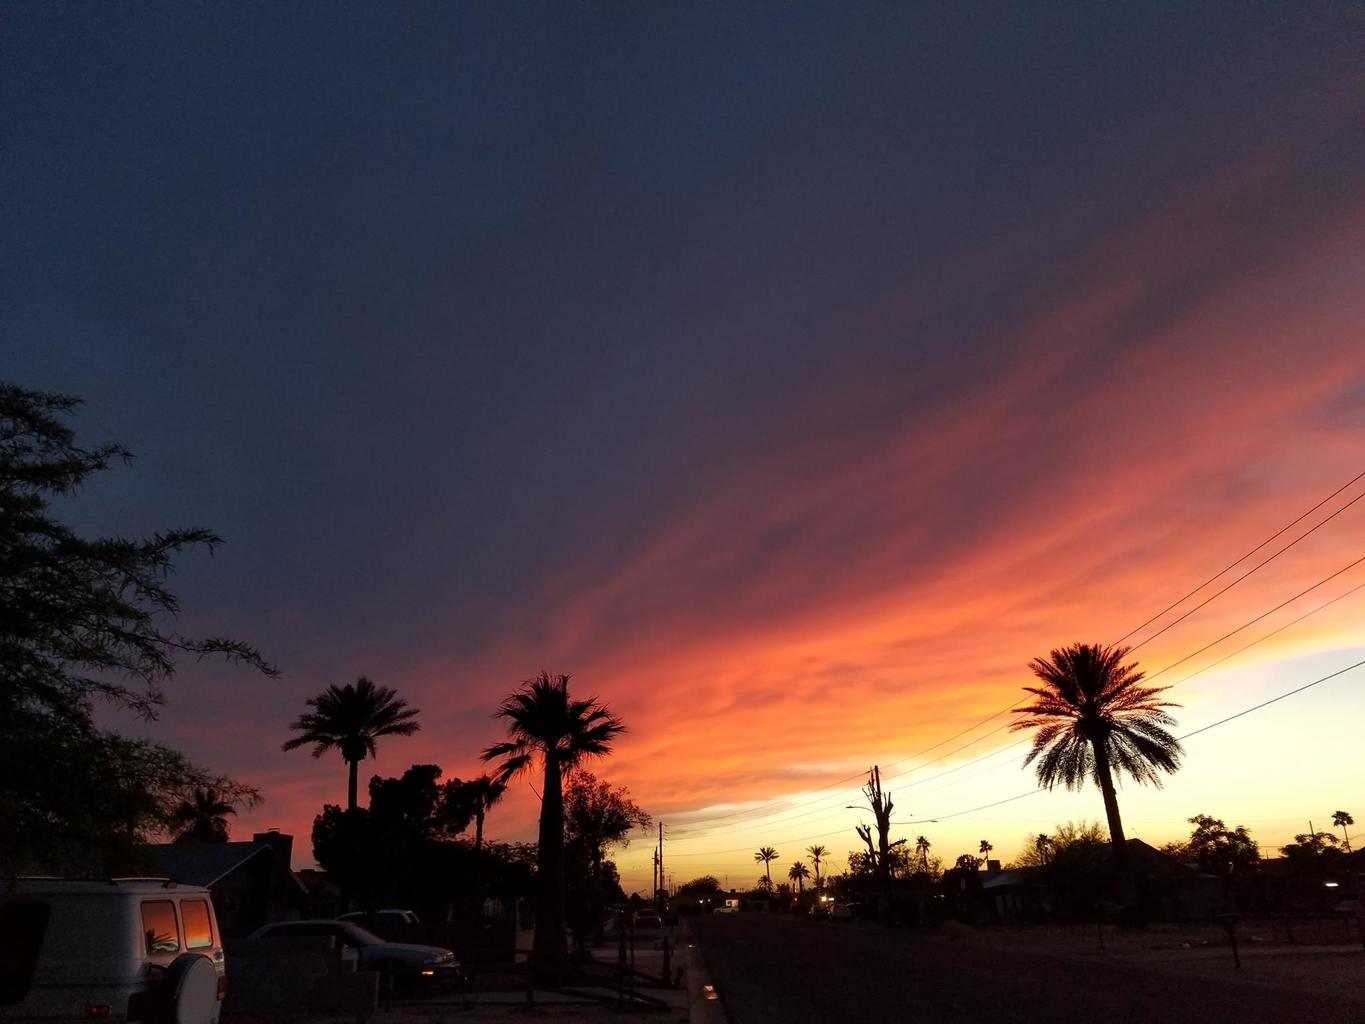 Tonight's sunset was too gorgeous to not share. Taken in Casa Grande, Arizona.